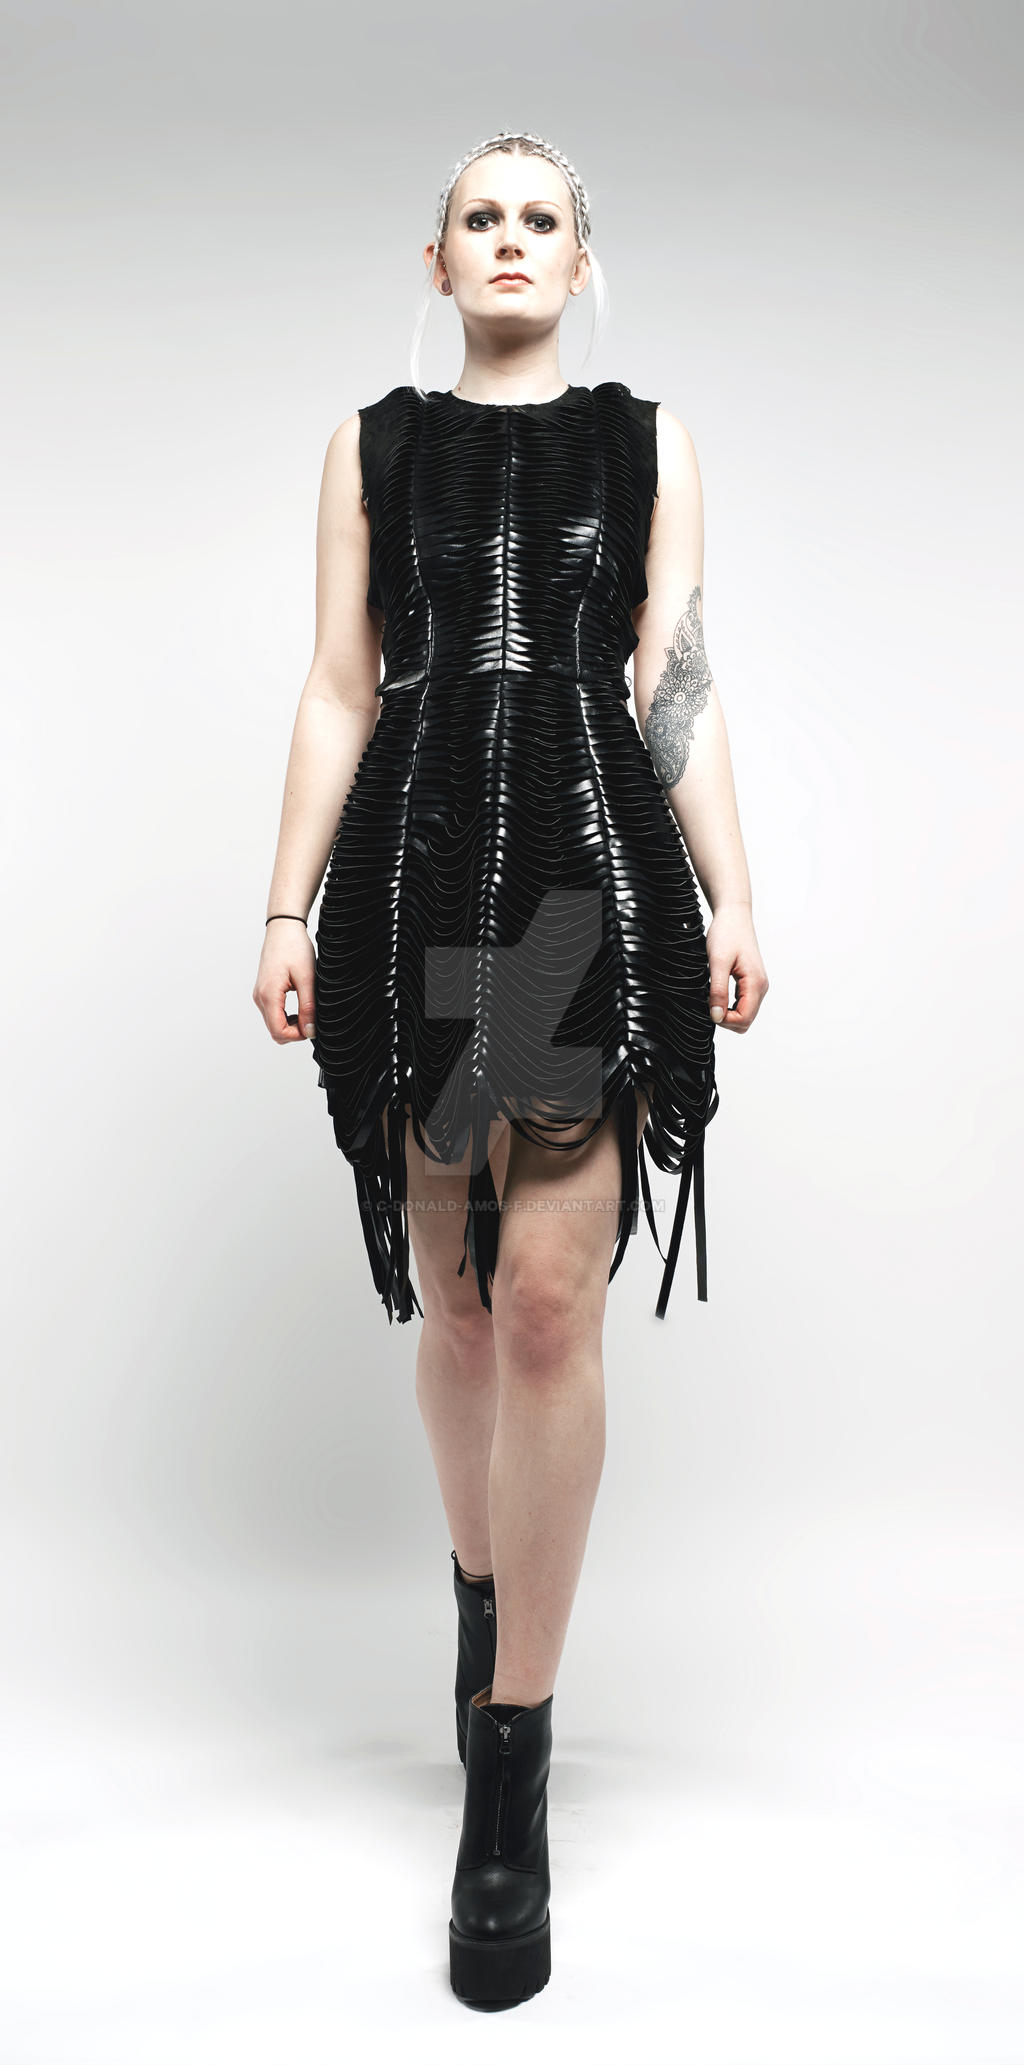 Braided Leather Strap Dress Photoshoot by C-Donald-Amos-F